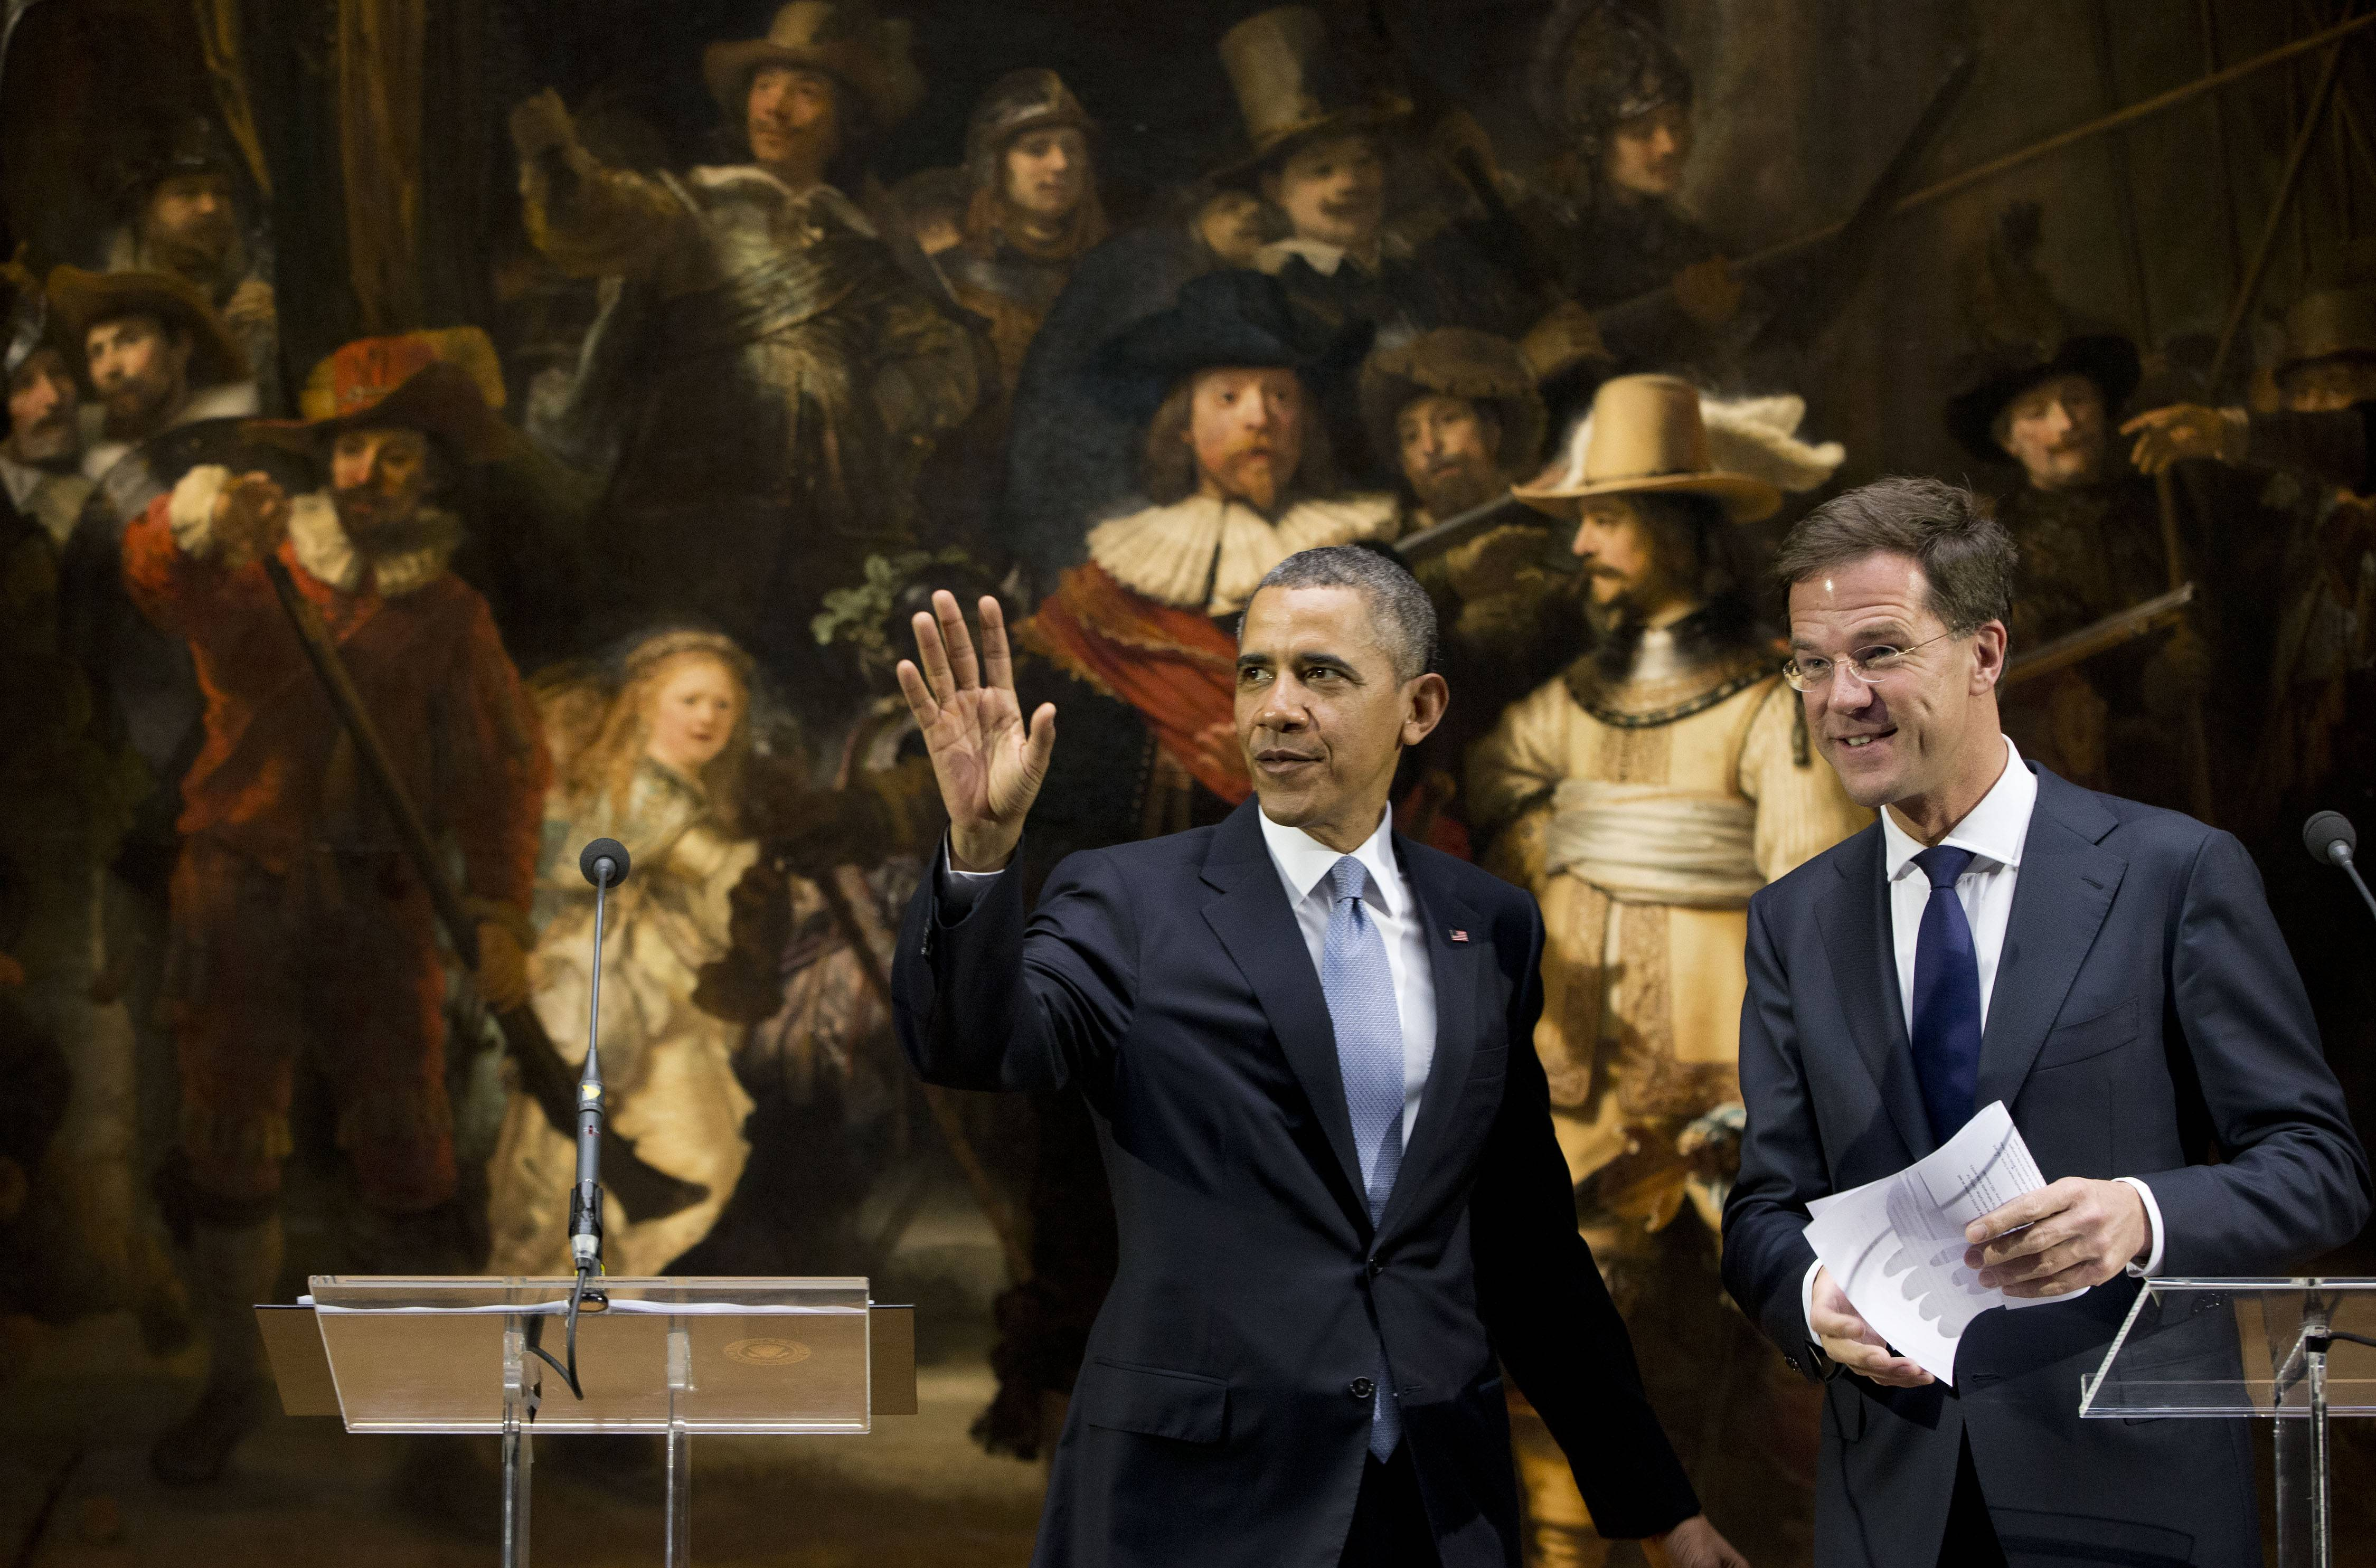 "U.S. President Barack Obama and Prime Minister of the Netherlands Mark Rutte leave after their joint statement in front of Rembrandt's ""The Nightwatch"" at Rijksmuseum in Amsterdam. Obama is attending the Nuclear Security Summit in The Hague, which will form the backdrop for an emergency meeting of Group of Seven leaders on Russia's annexation of Crimea."